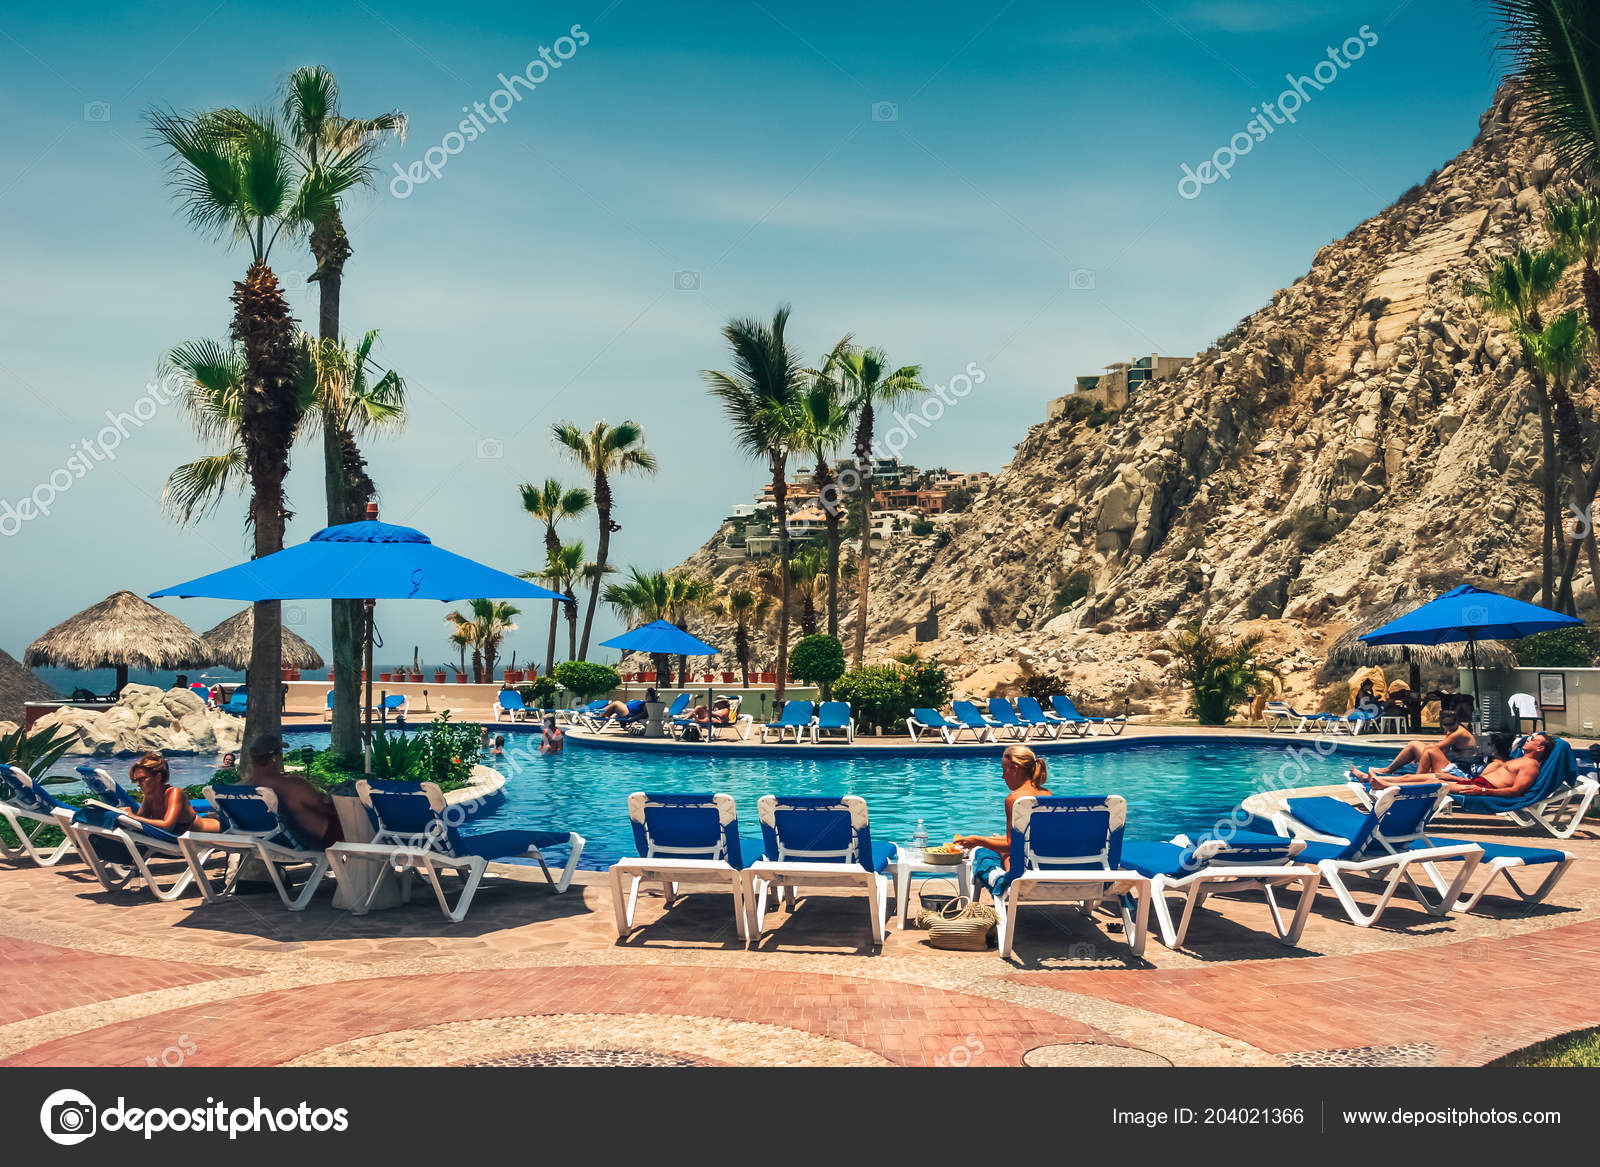 Hotel pool with people  Cabo San Lucas Mexico August 2007 View Hotel Pool People ...